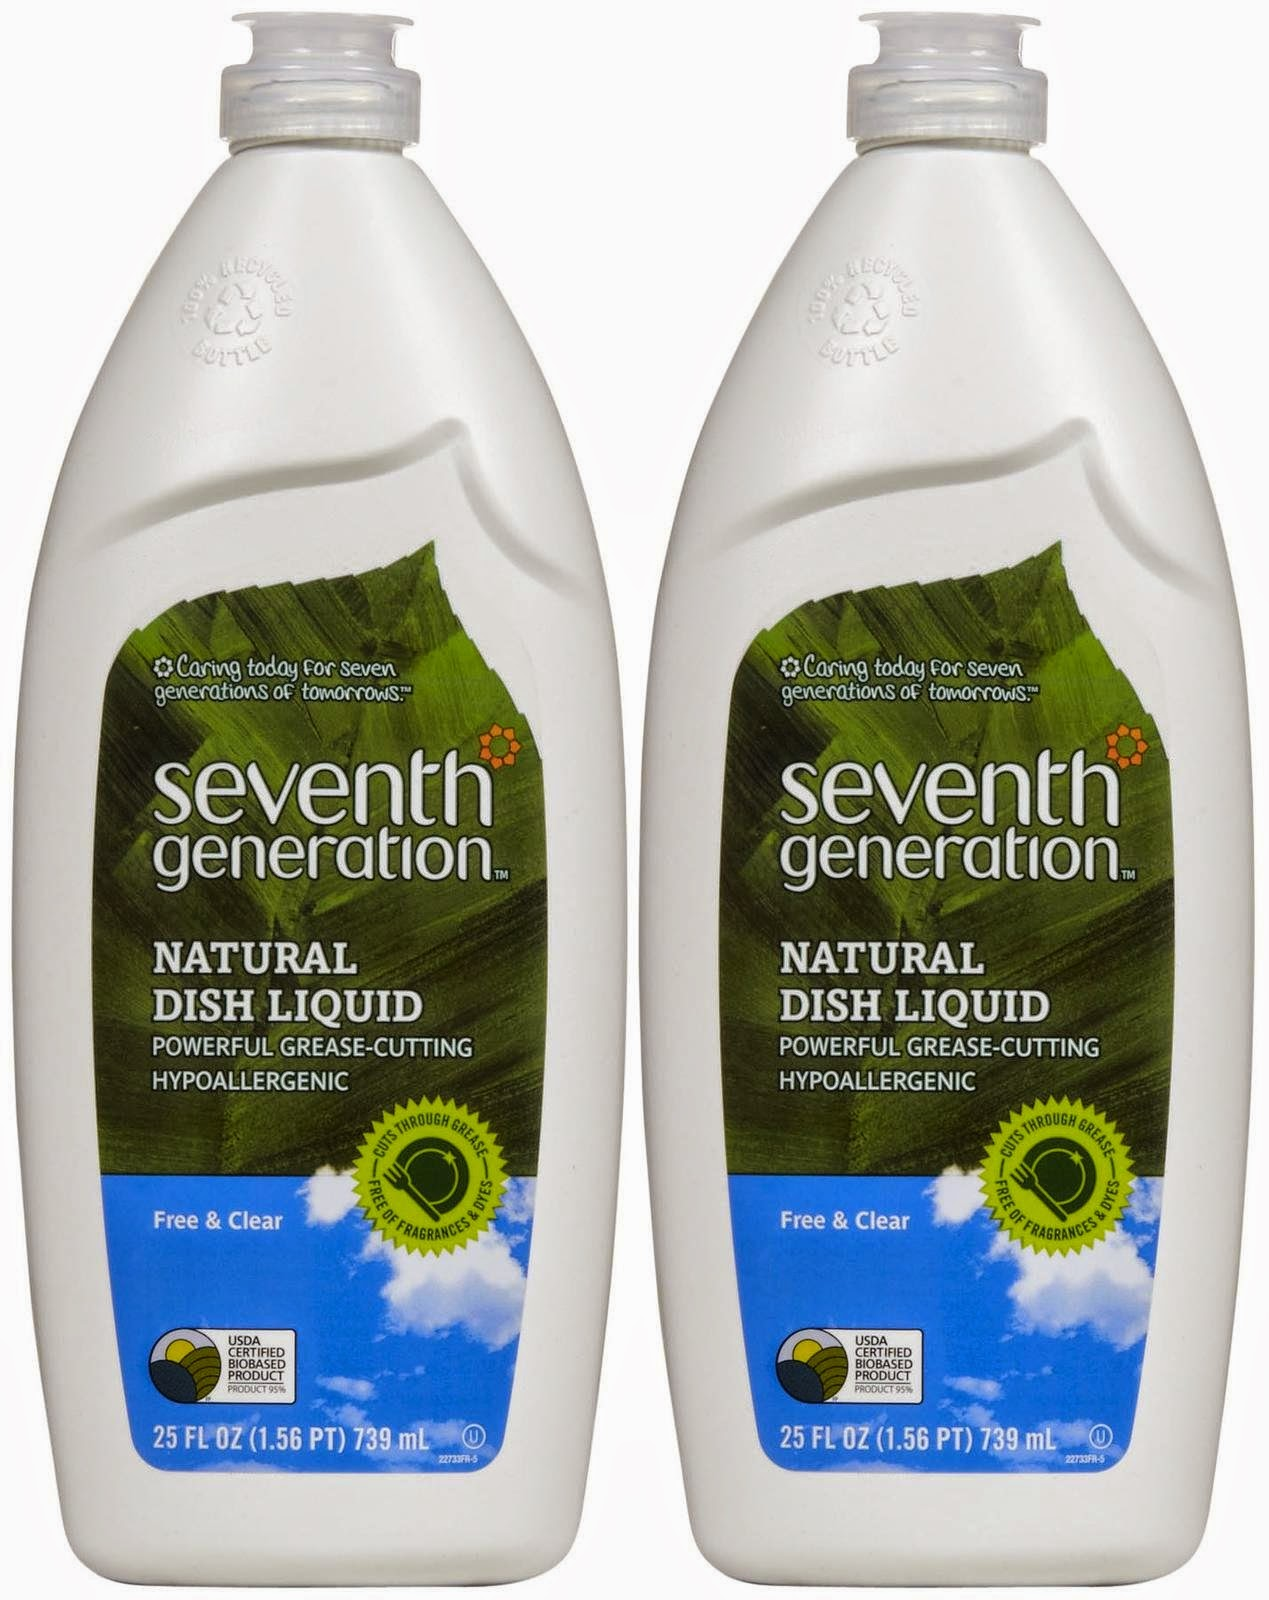 No more stinky sponges - Seventh Generation Dish Liquid